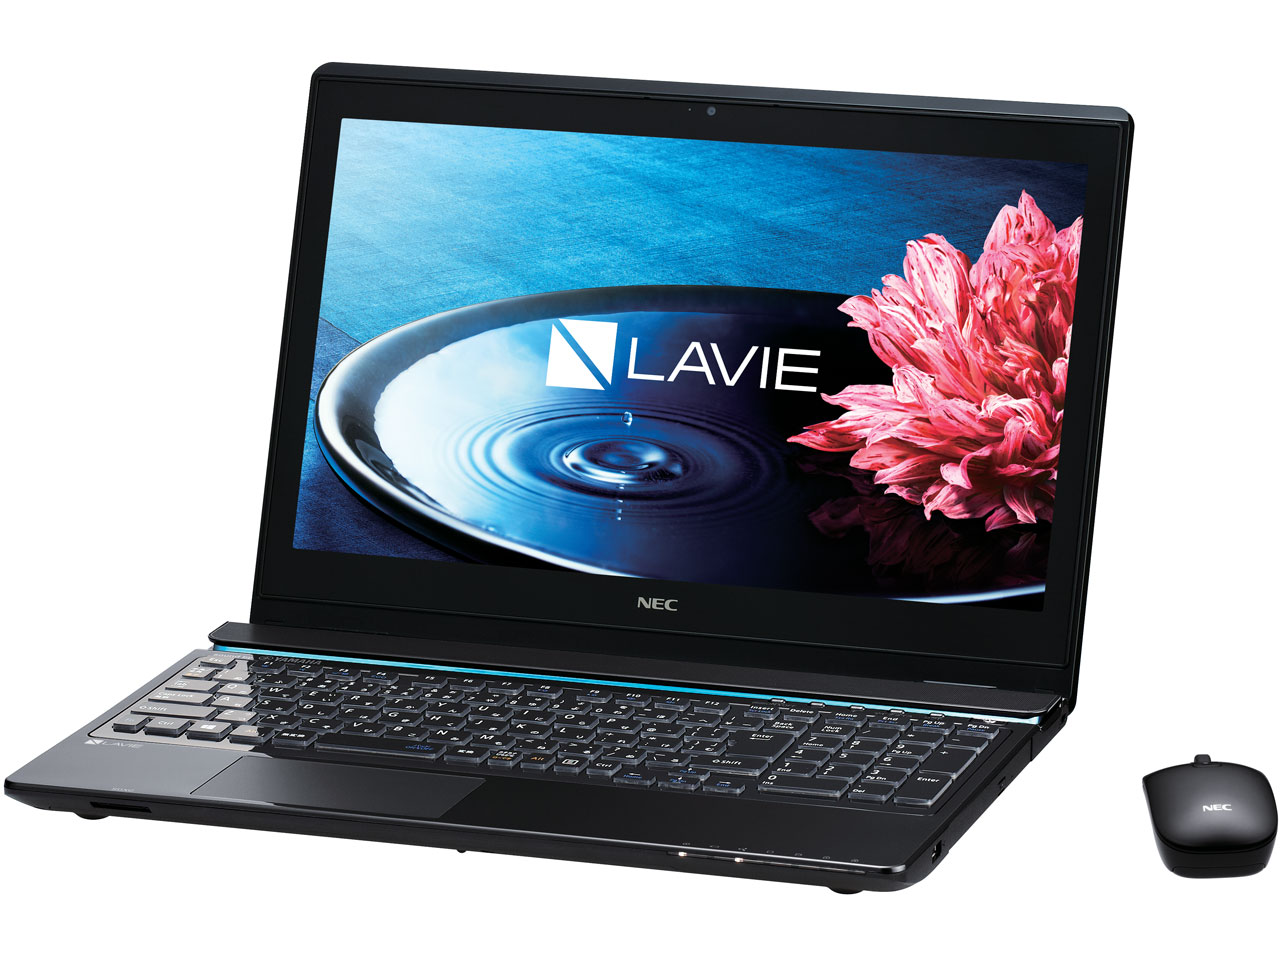 LAVIE Note Standard NS750/BAB PC-NS750BAB [�N���X�^���u���b�N] �̐��i�摜